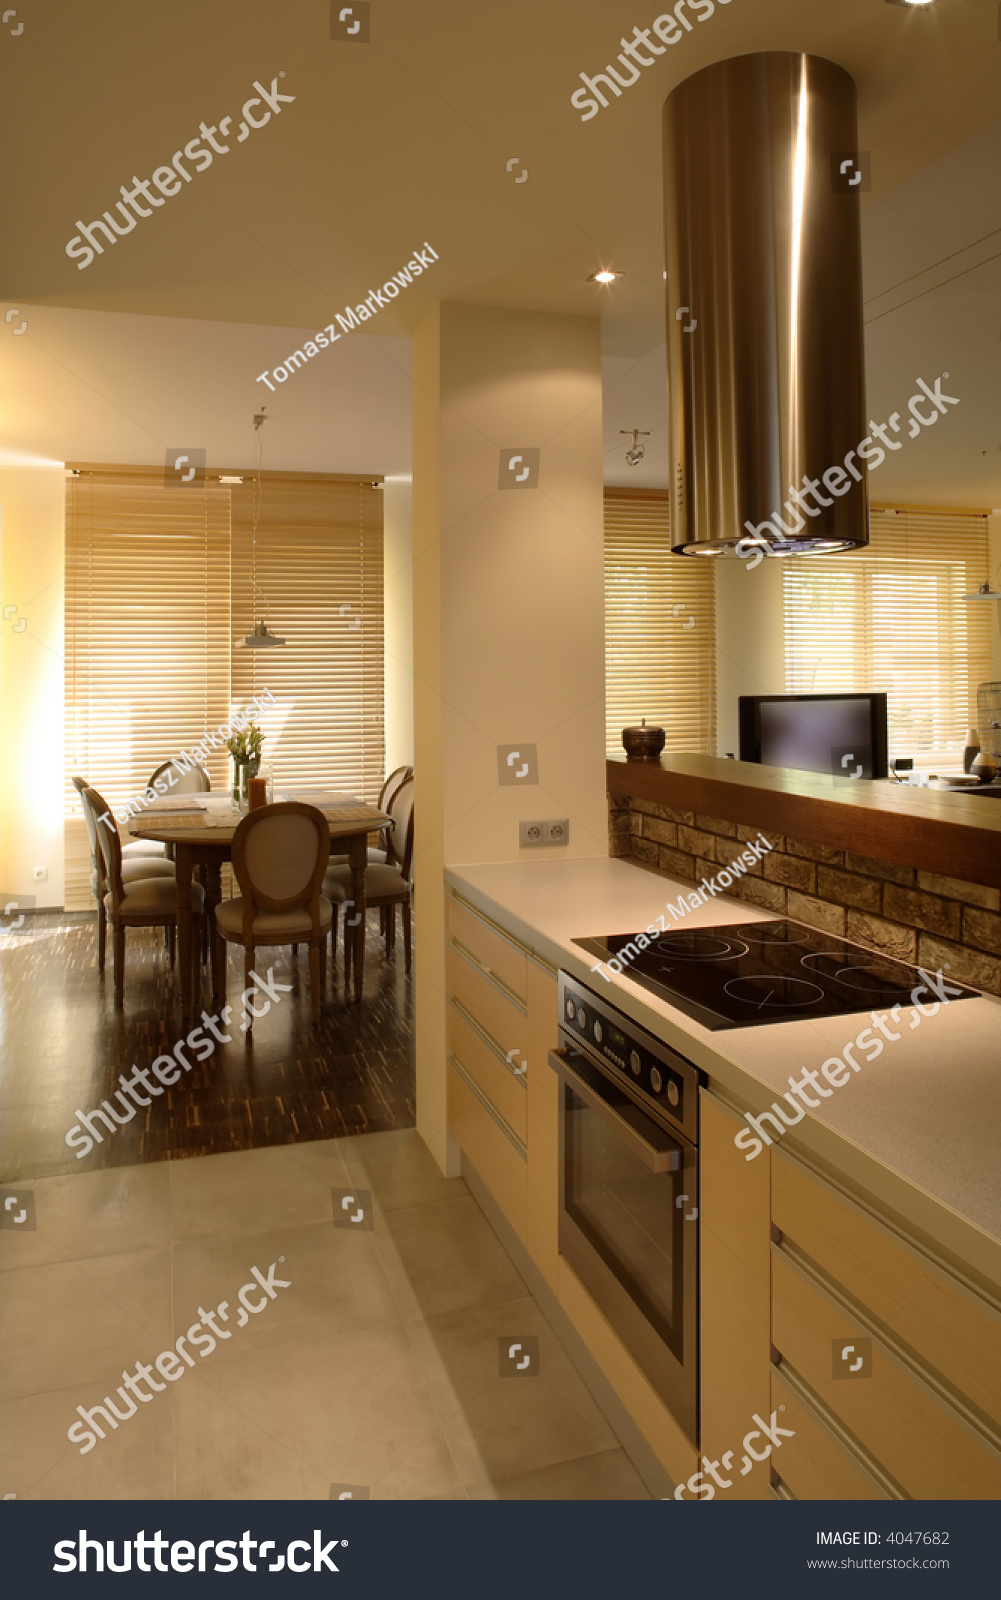 Kitchen in modern house #4047682